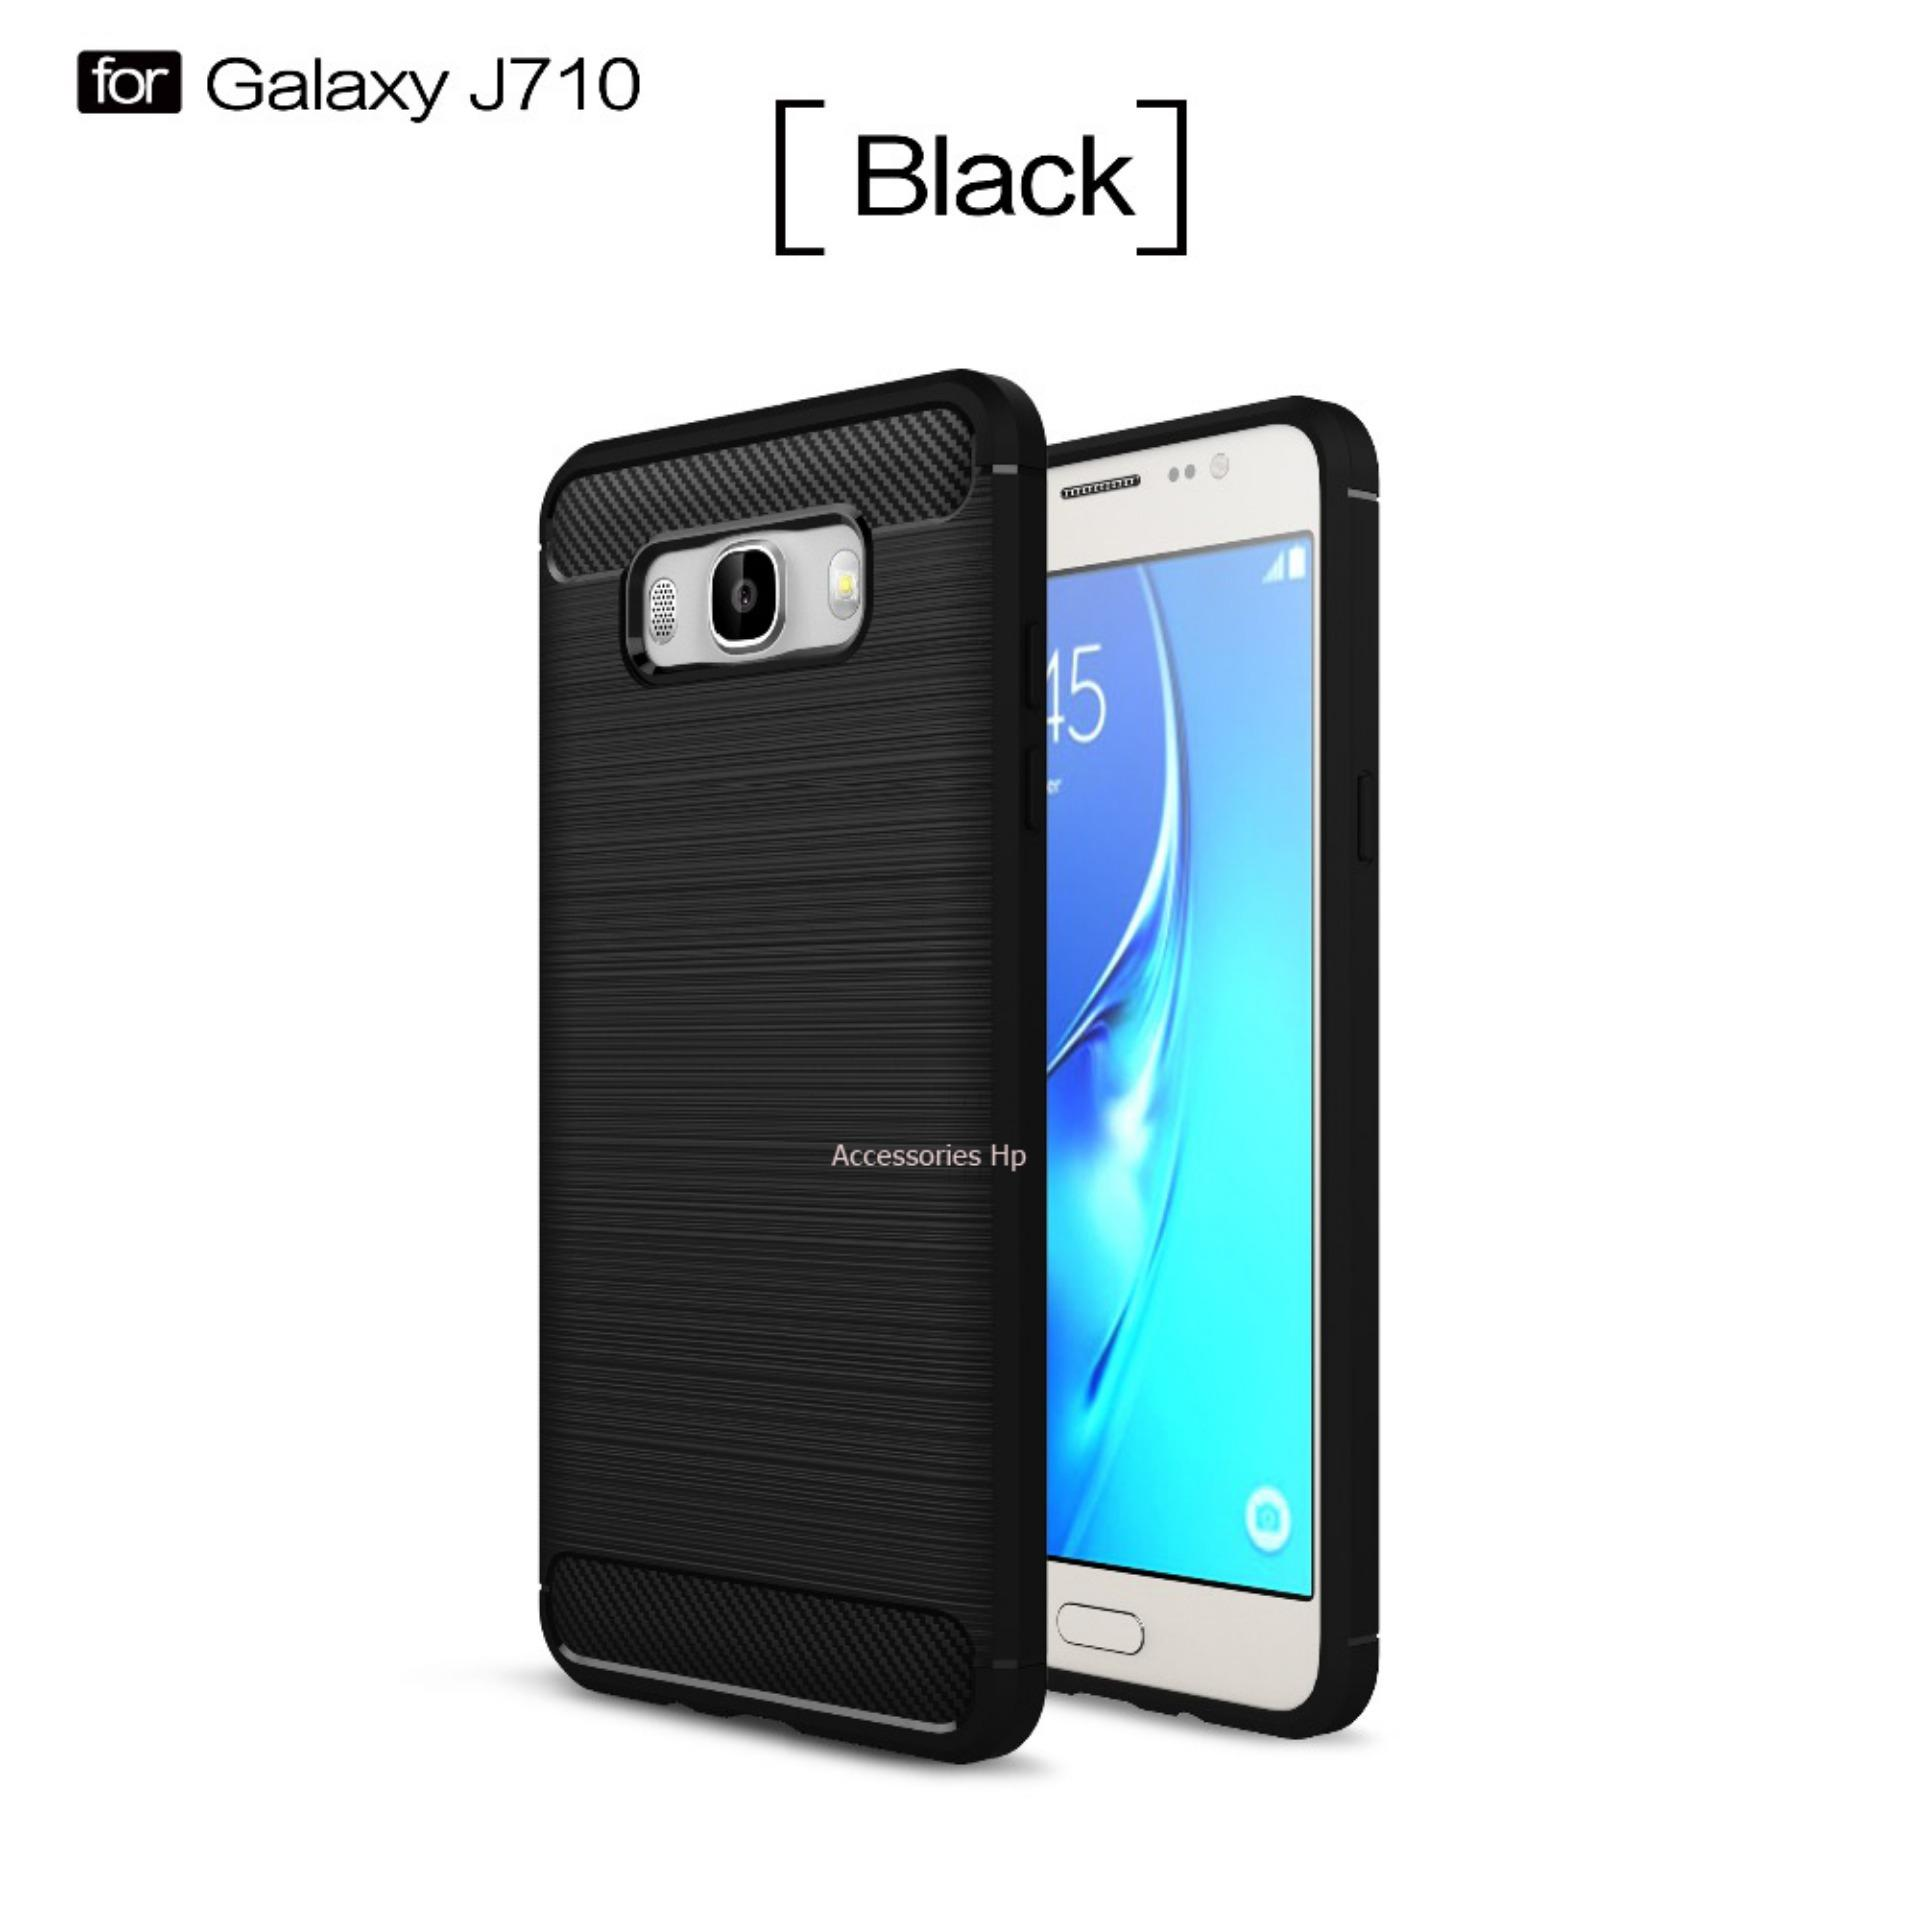 Accessories HP Premium Quality Carbon Shockproof Hybrid Case for Samsung Galaxy J7 2016 / J710 -